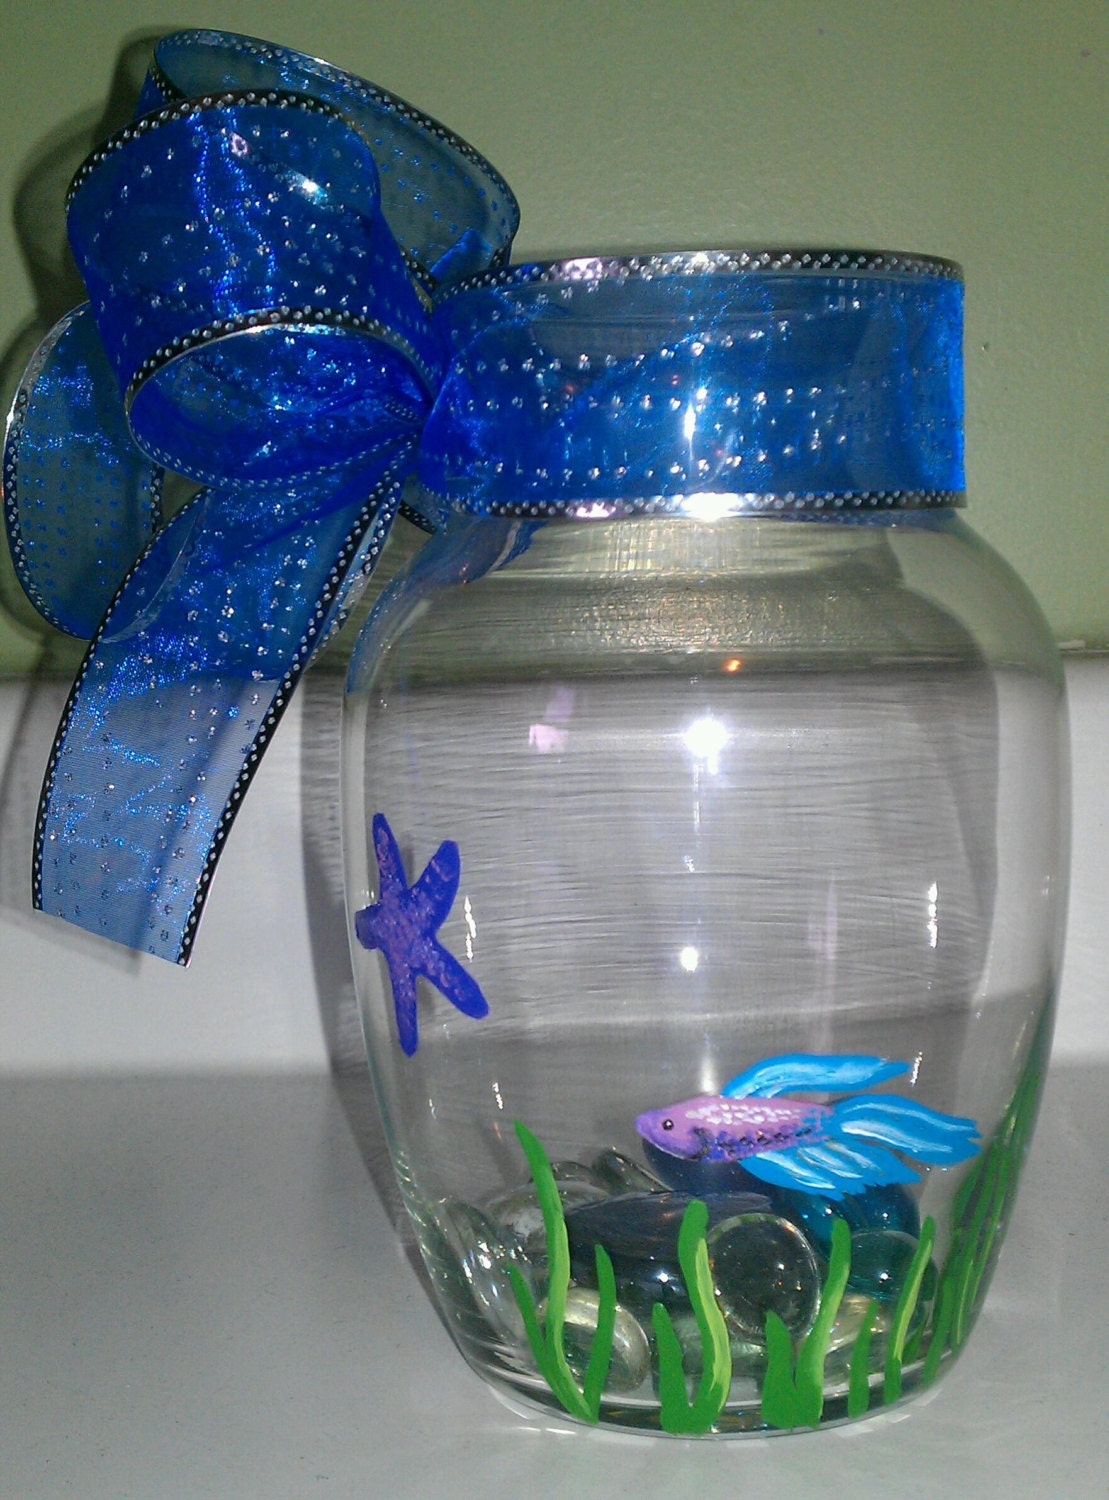 Hand painted betta fish bowl vase by paintedparrot on etsy for Betta fish vase